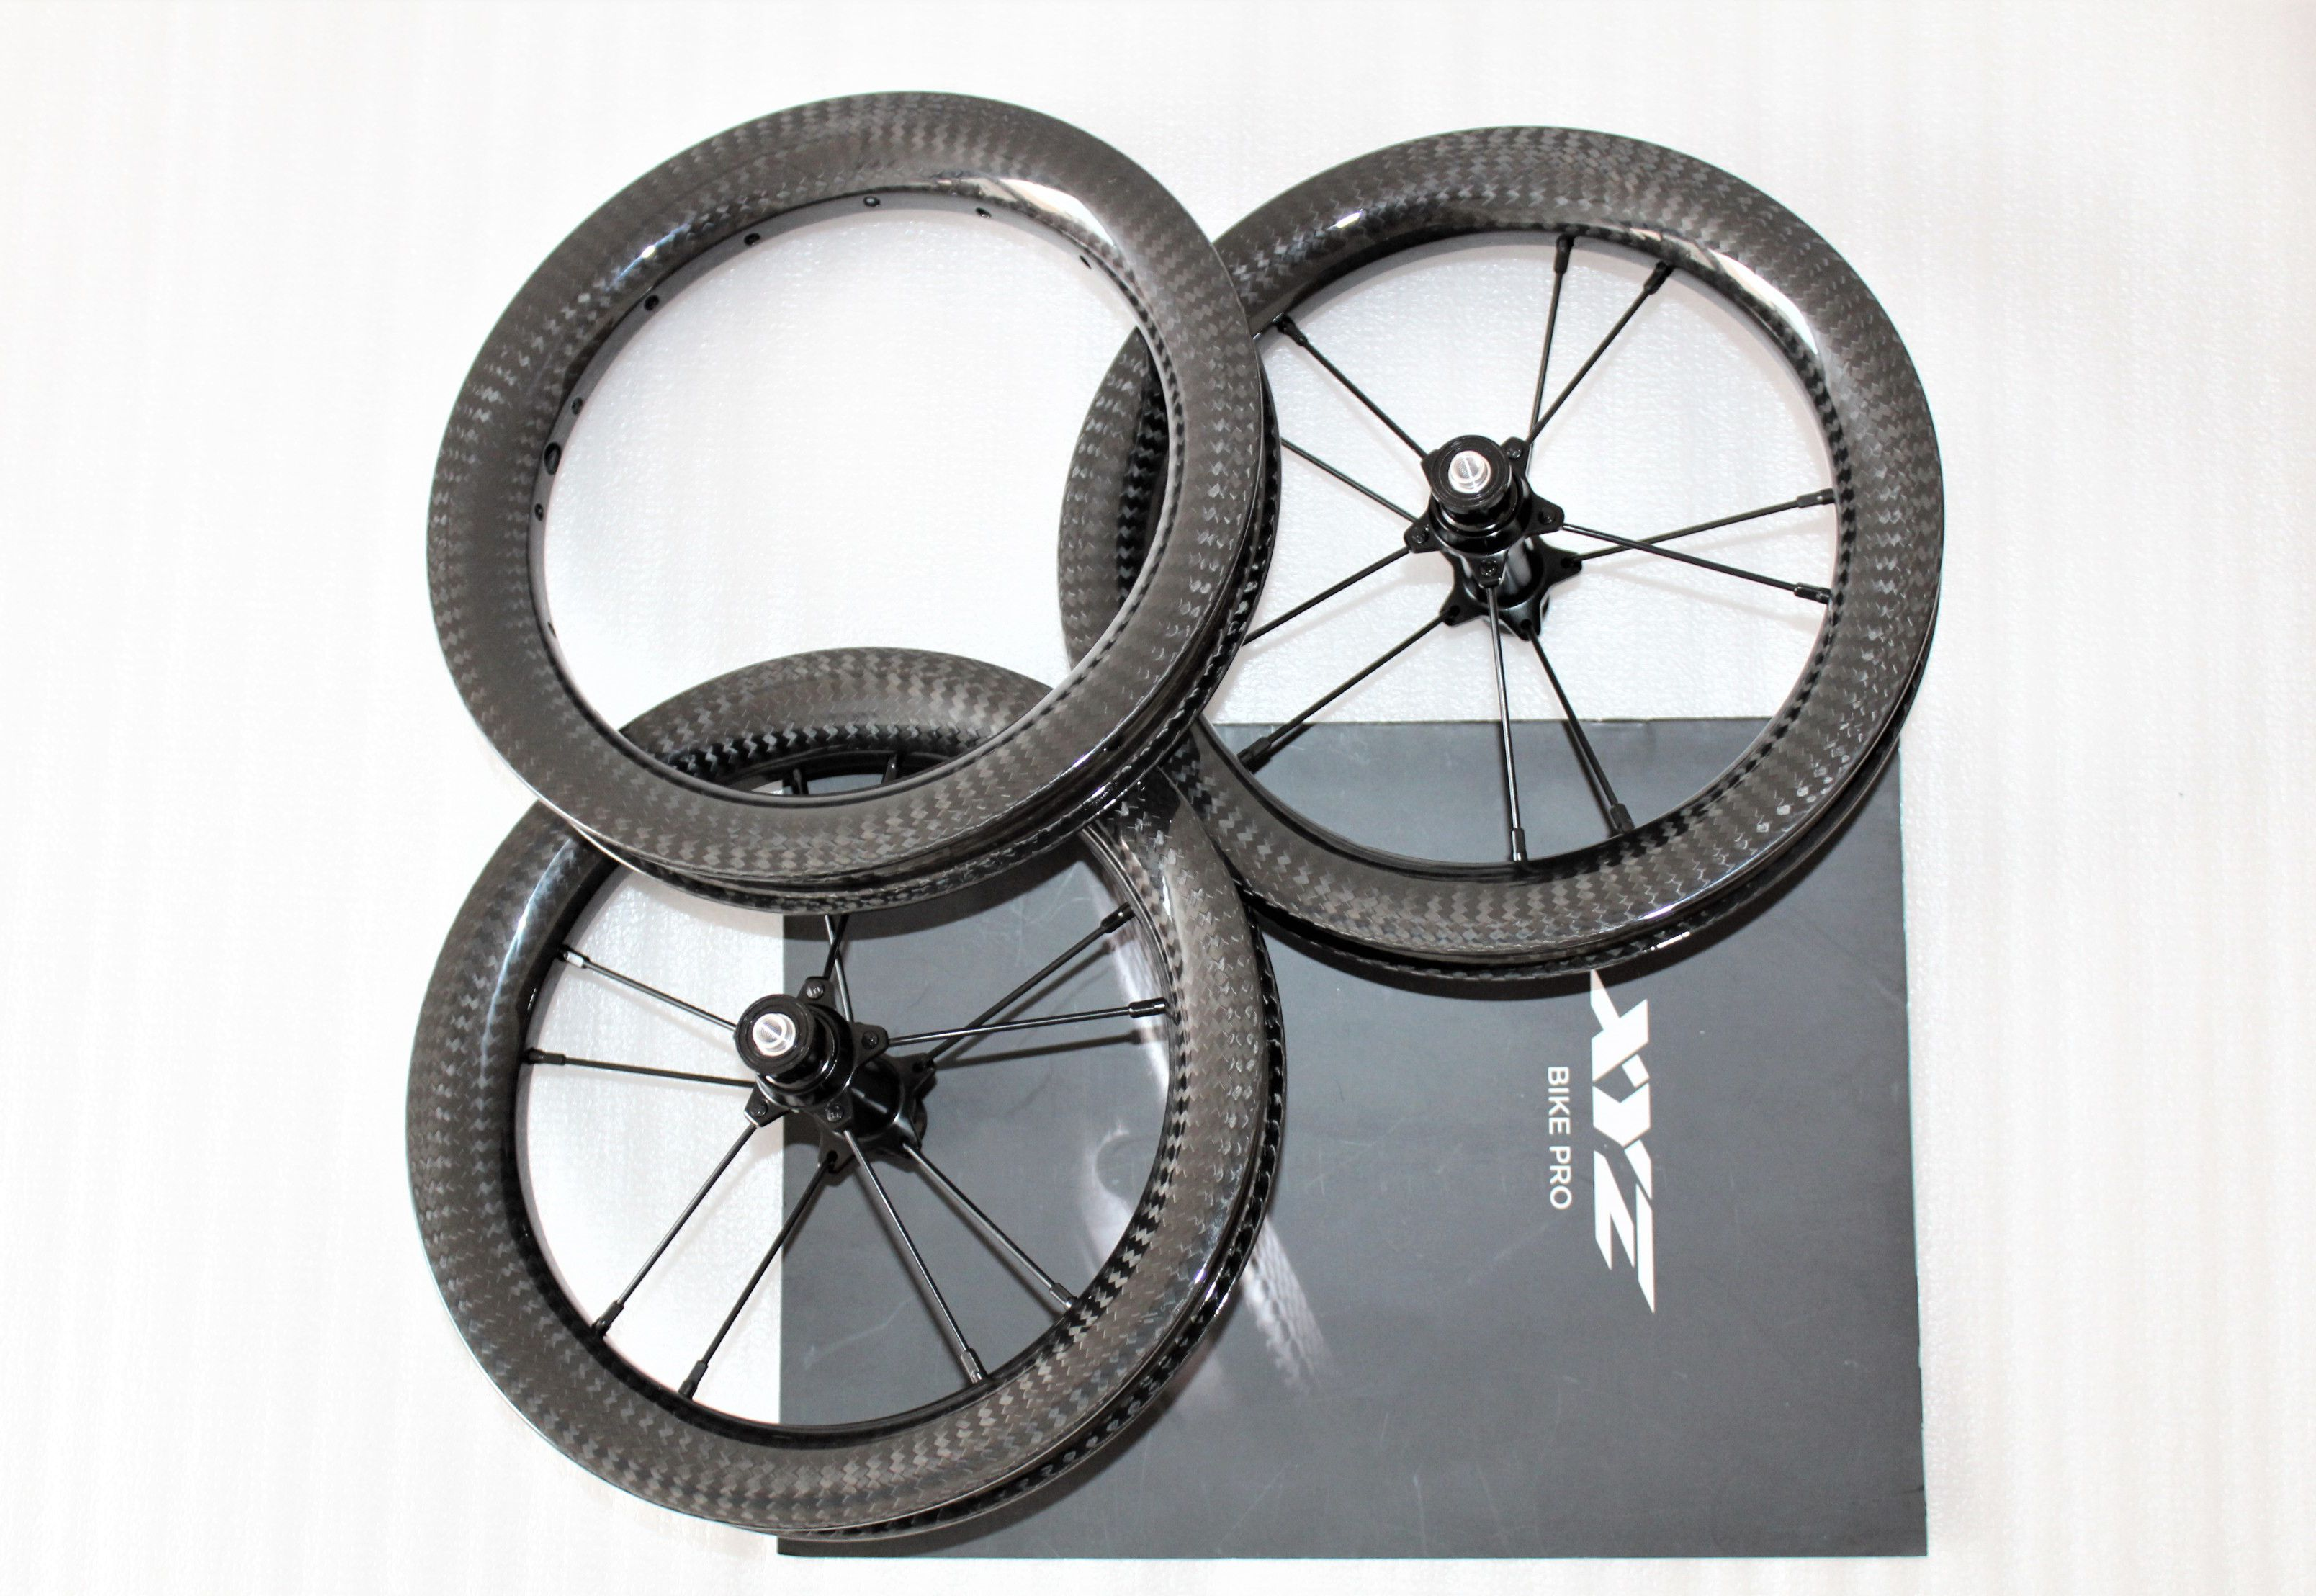 Custom 20 21 24mm Internal Rim Width 12inch Carbon Fiber Balance Bicycle Wheels For Push Bike Push Bikes Balance Bicycle Bicycle Wheels